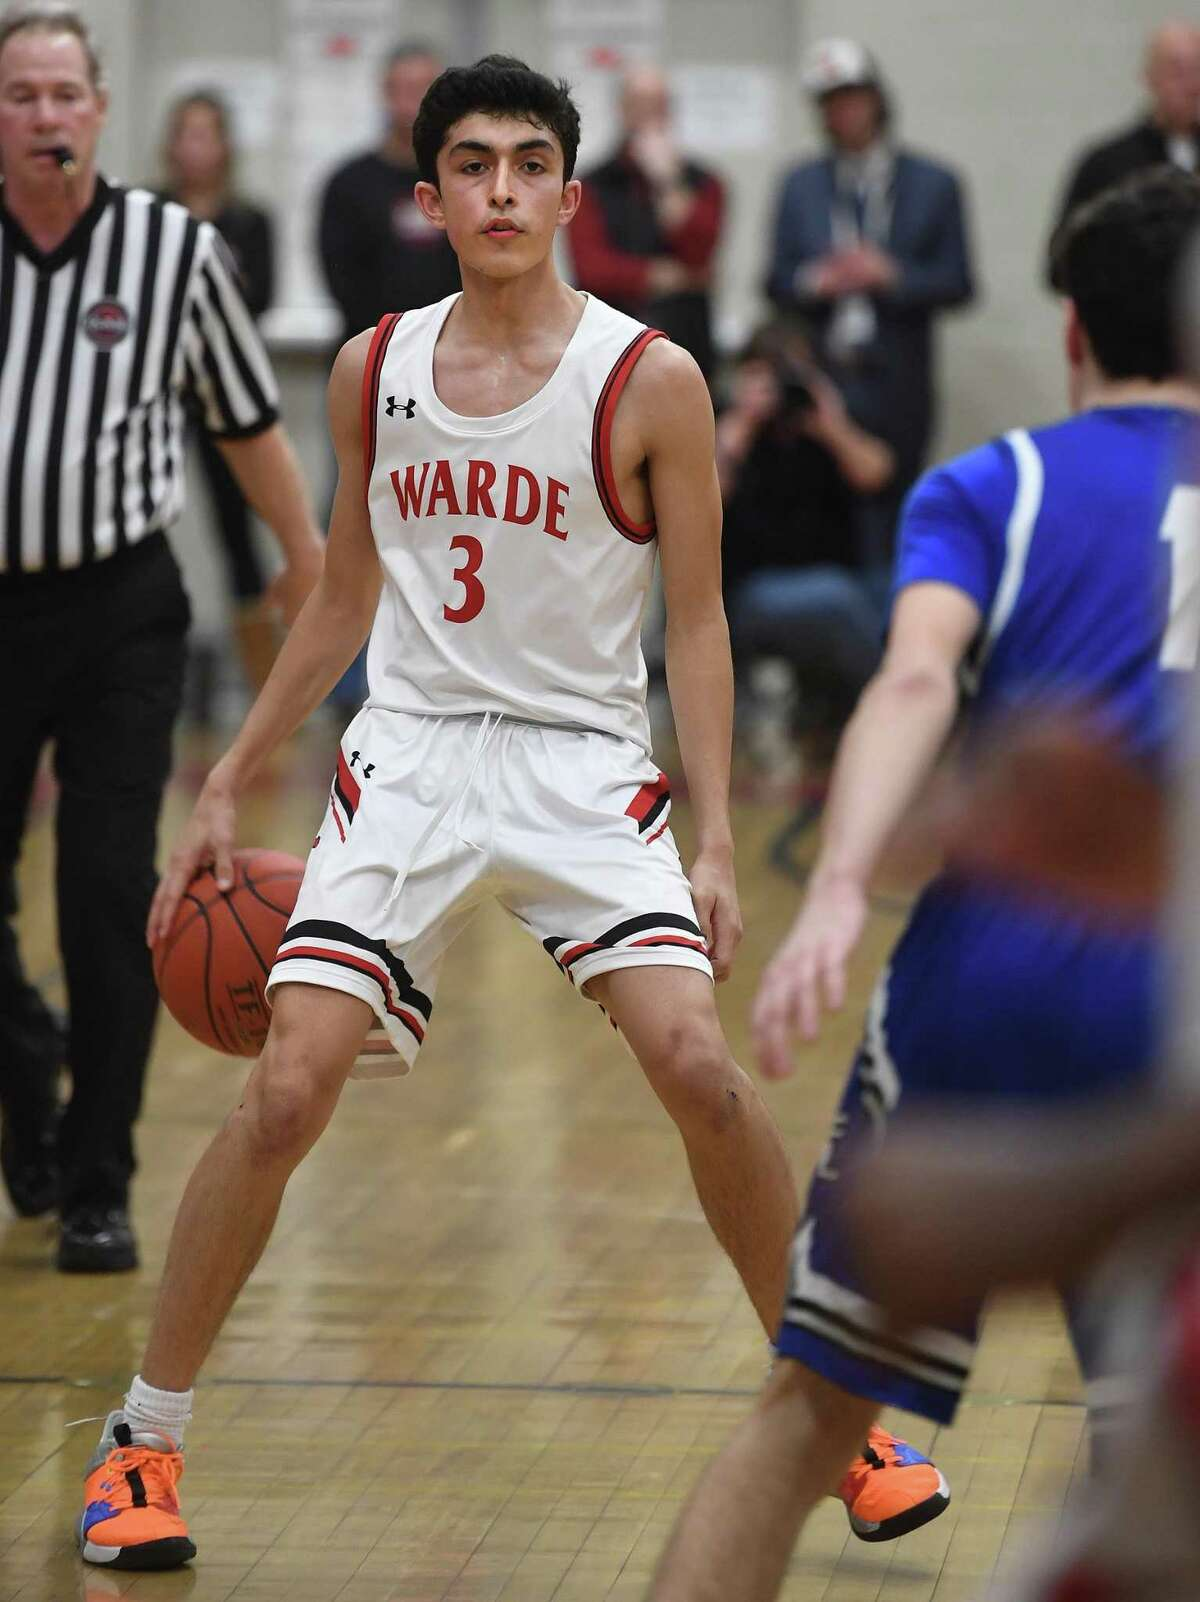 Warde point guard Brendan McMahon dribbles behind his back as he surveys the defense in the first half of their boys basketball game with rival Ludlowe at Warde High School in Fairfield, Conn. on Monday, February 03, 2020.